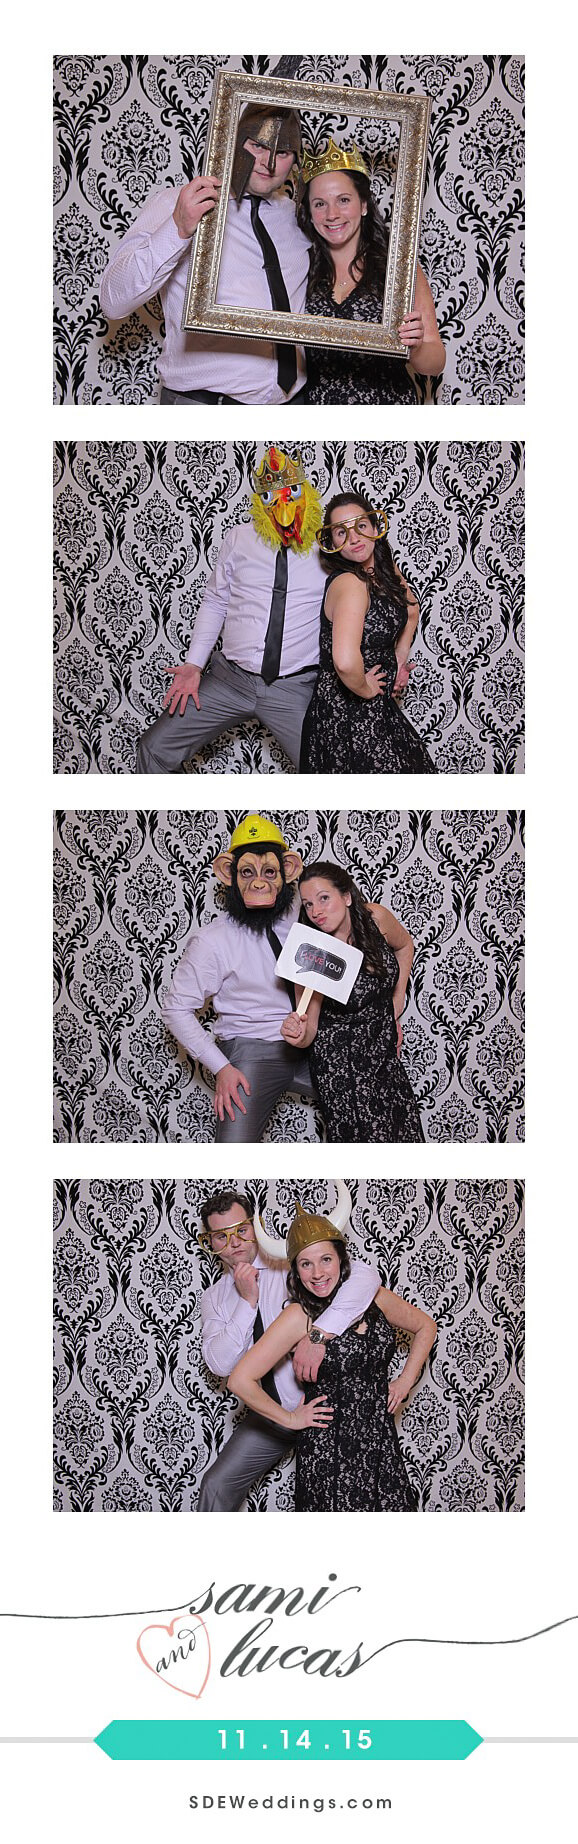 Toronto Paradise Banquet Hall Wedding Photo Booth Rental 9